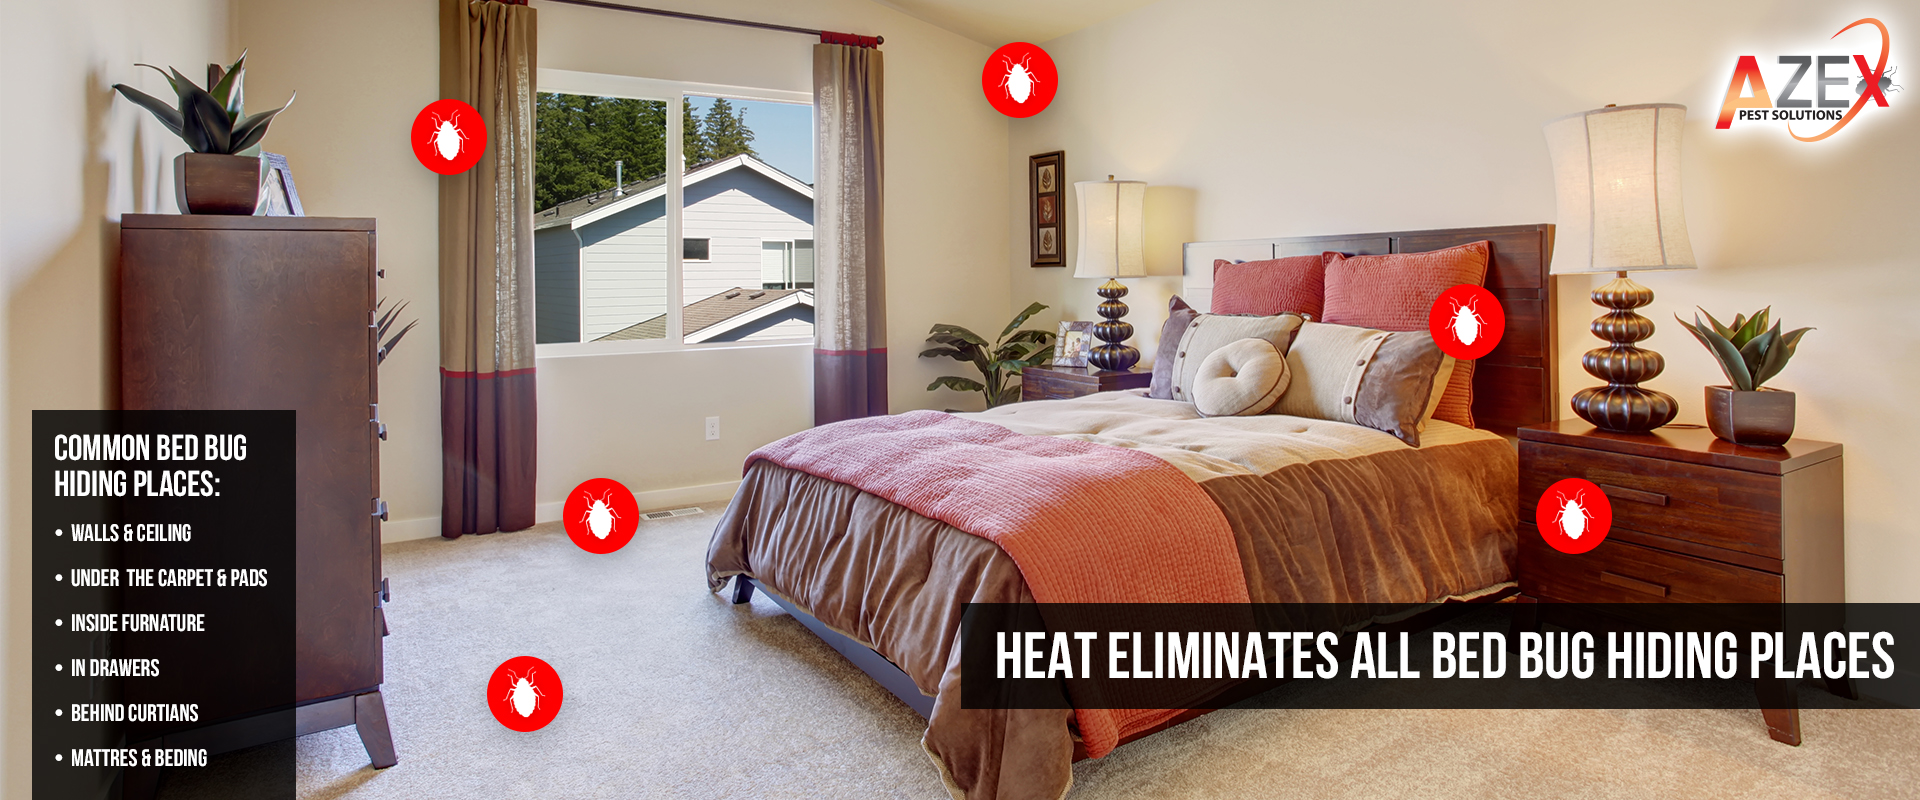 Getting A New Bed bed bug heat treatments | azex pest solutions | bed bug heat and